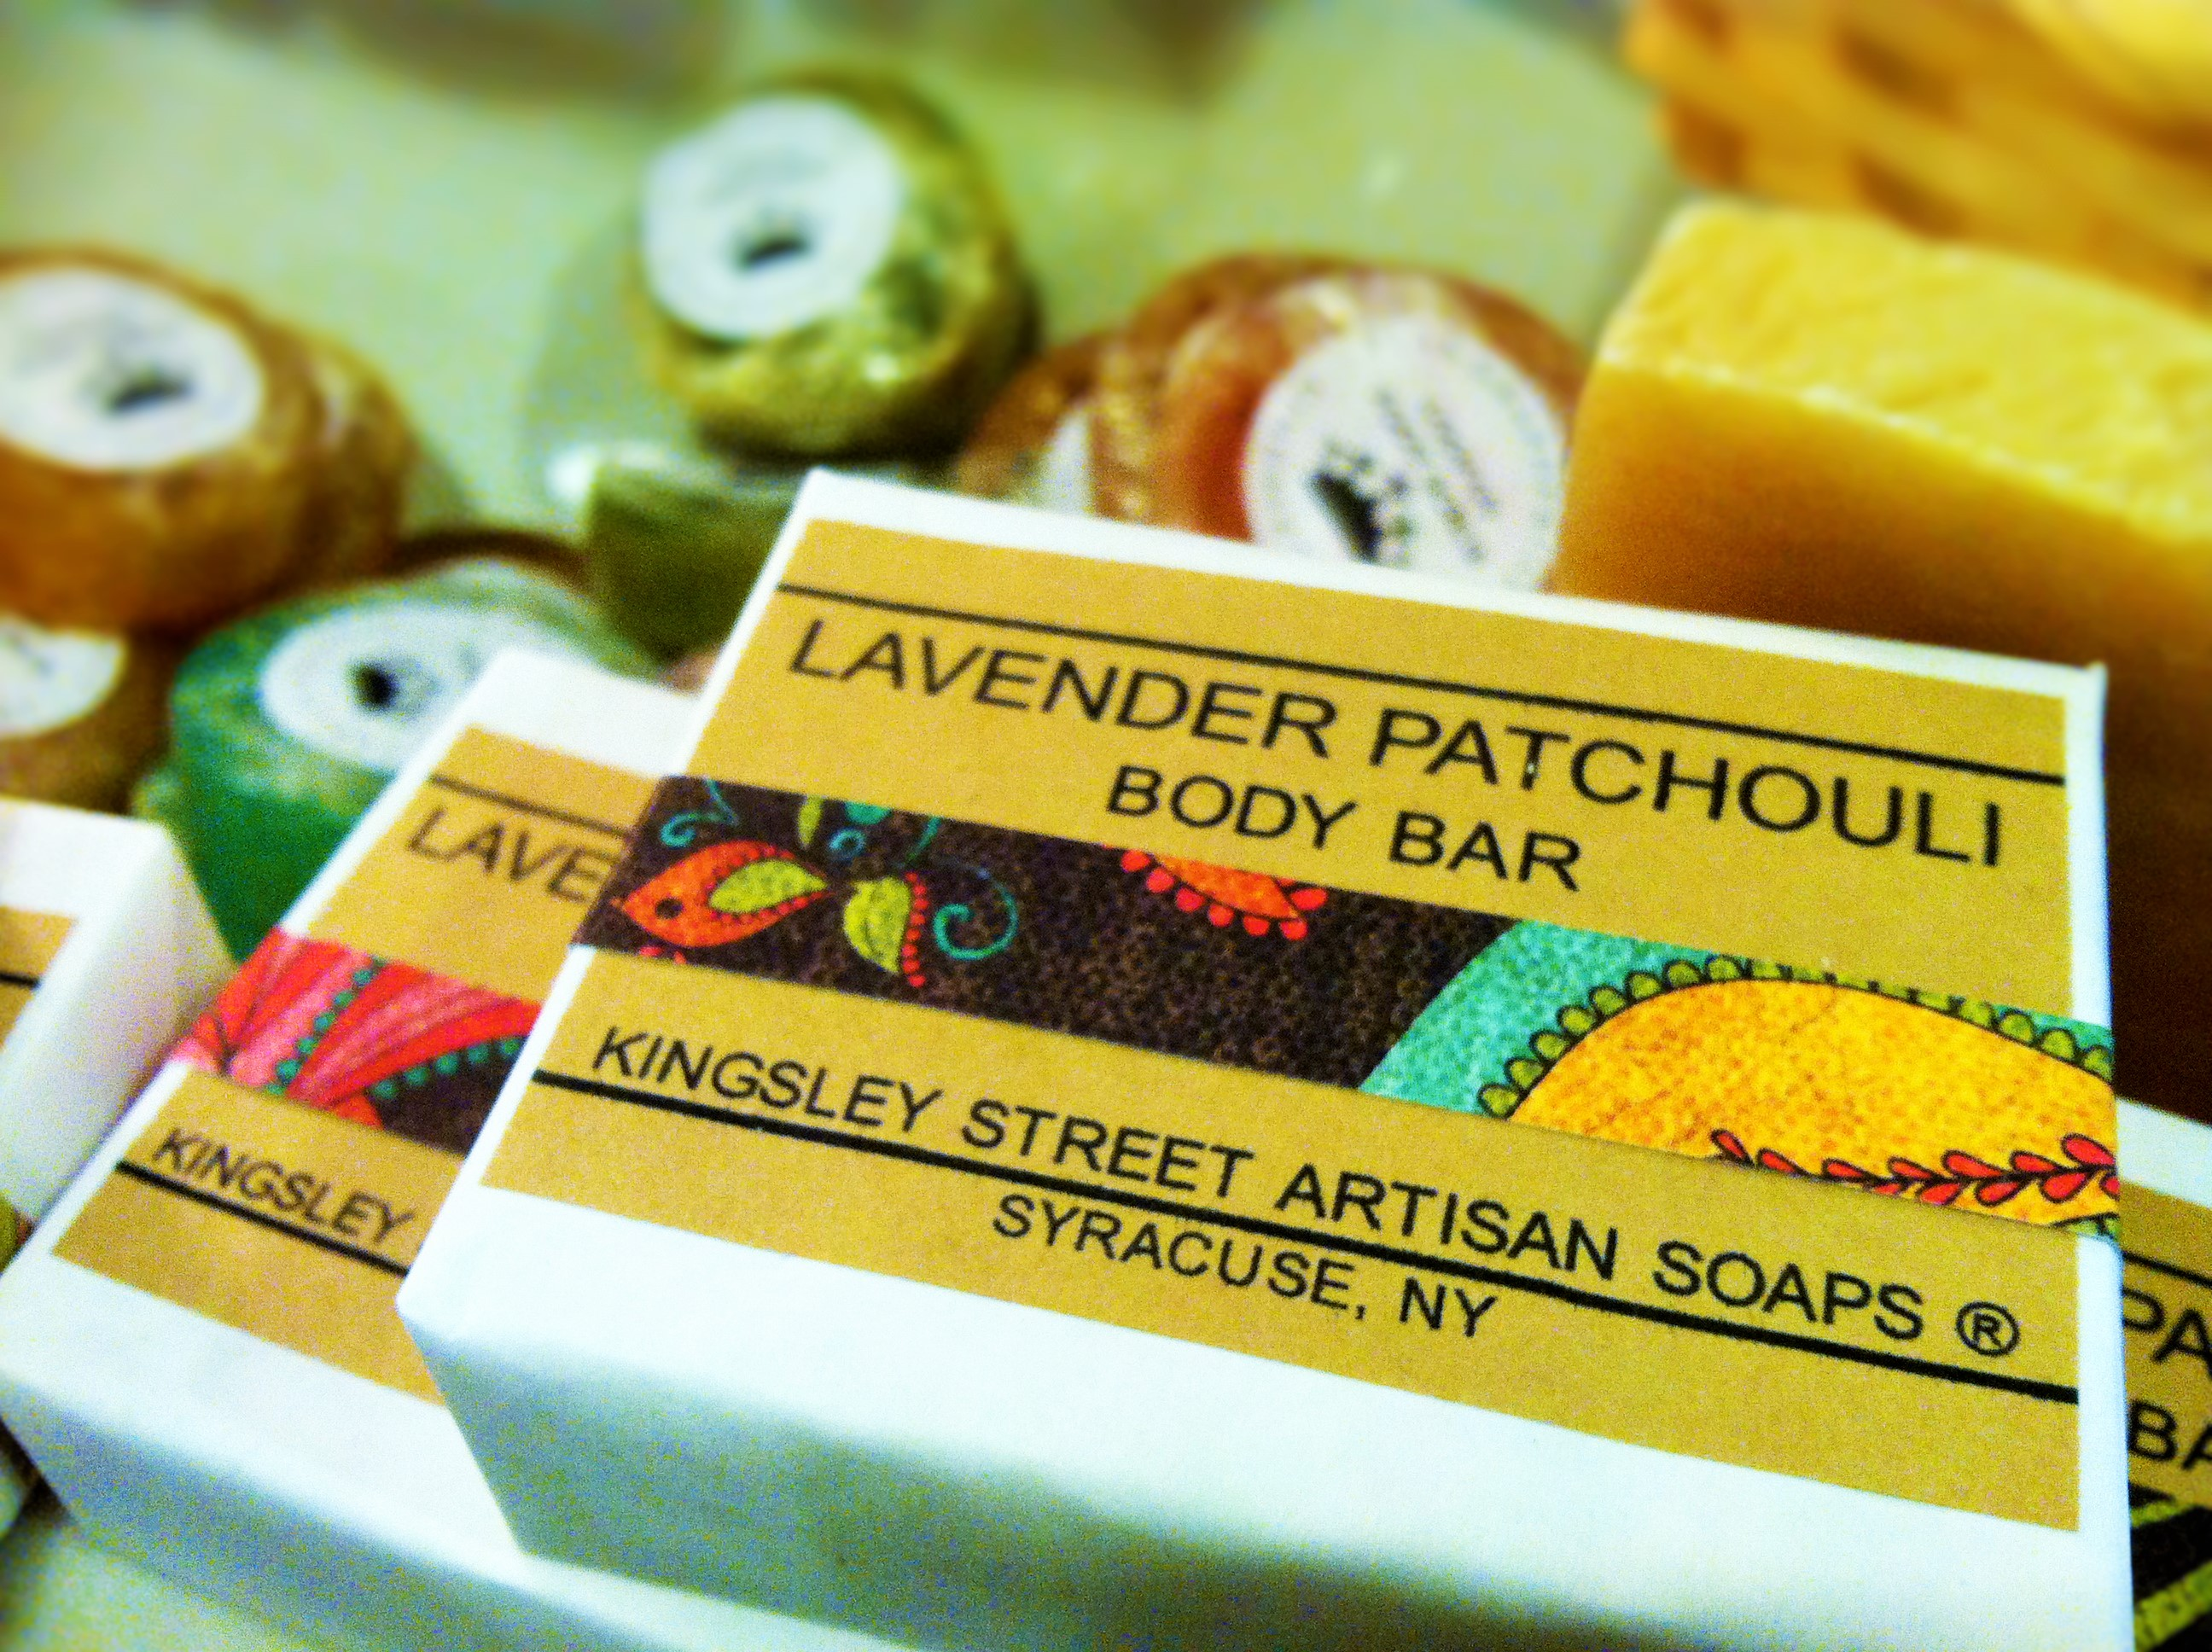 Lavender Patchouli Body Bar